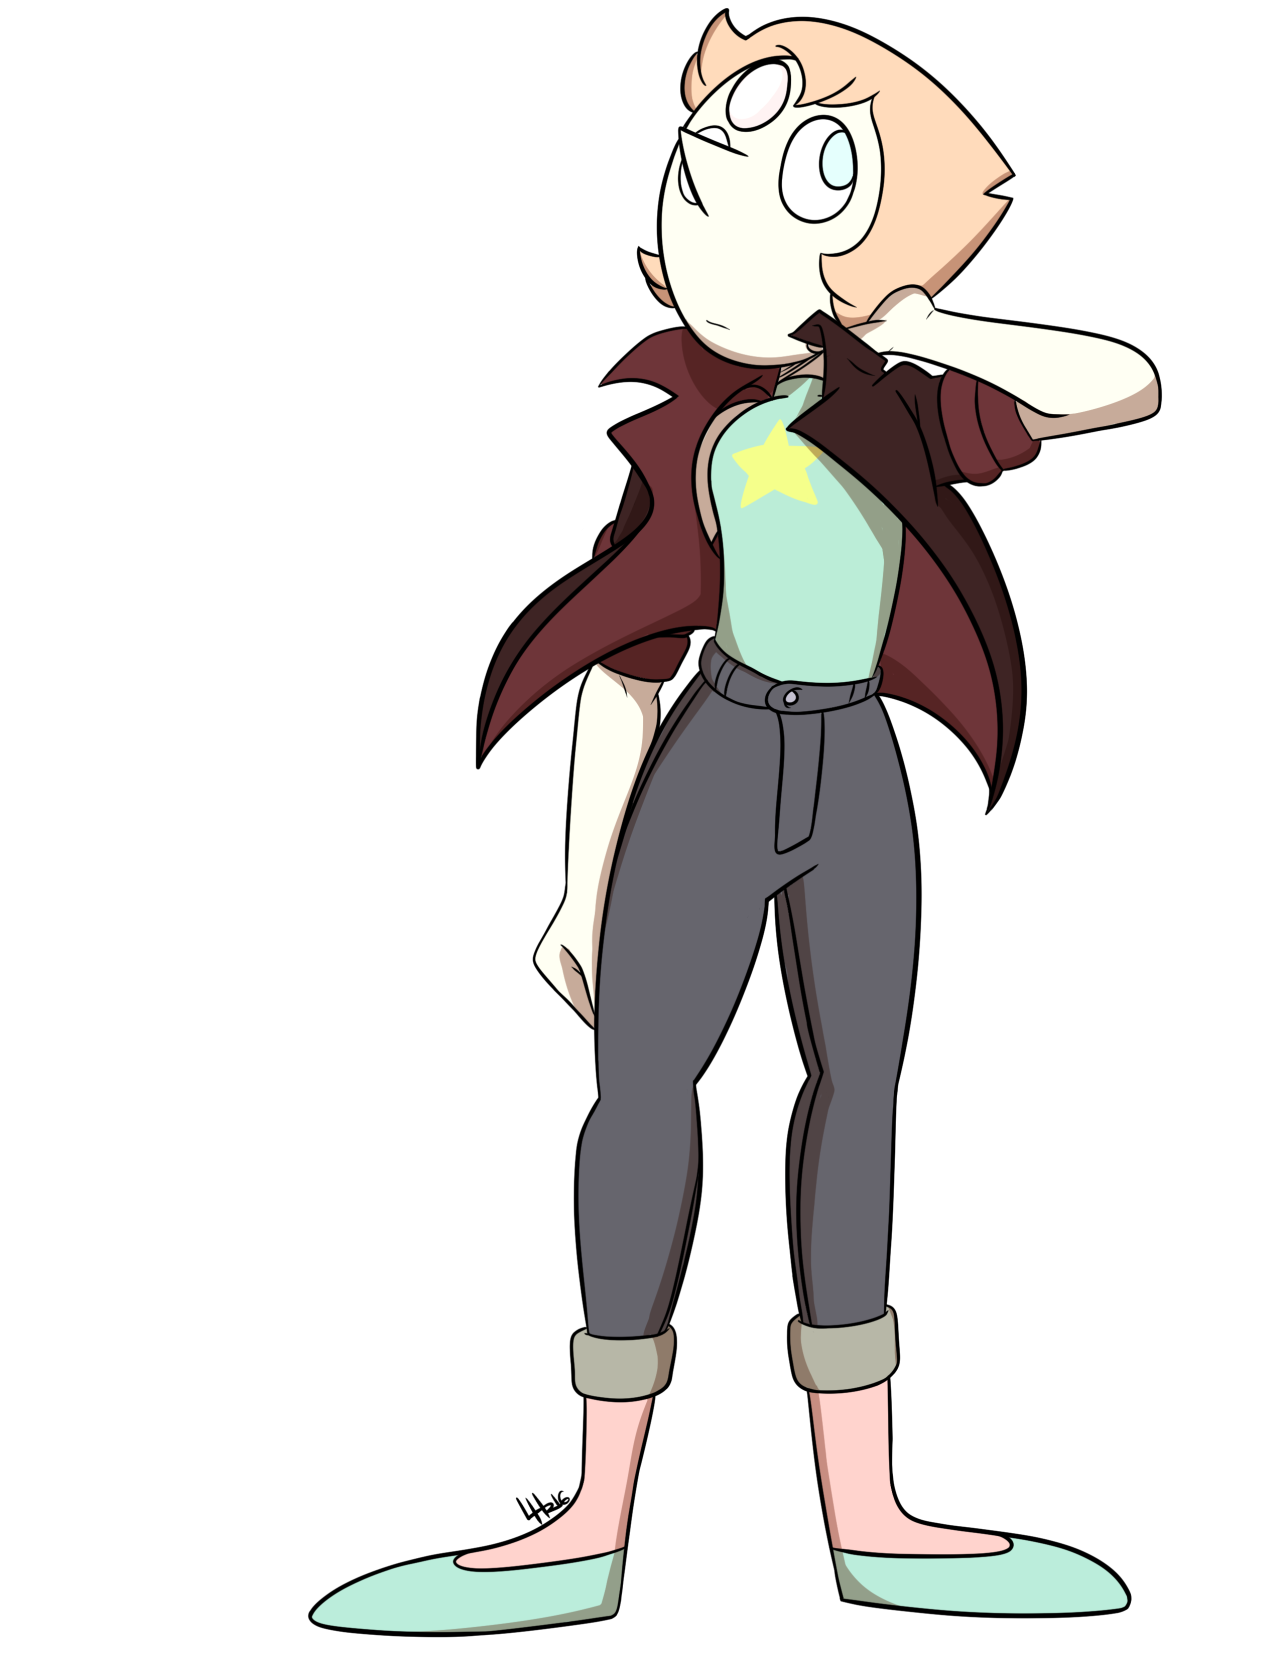 How to keep me interested in SU, keep putting Pearl in different outfits because she looks good in anything.